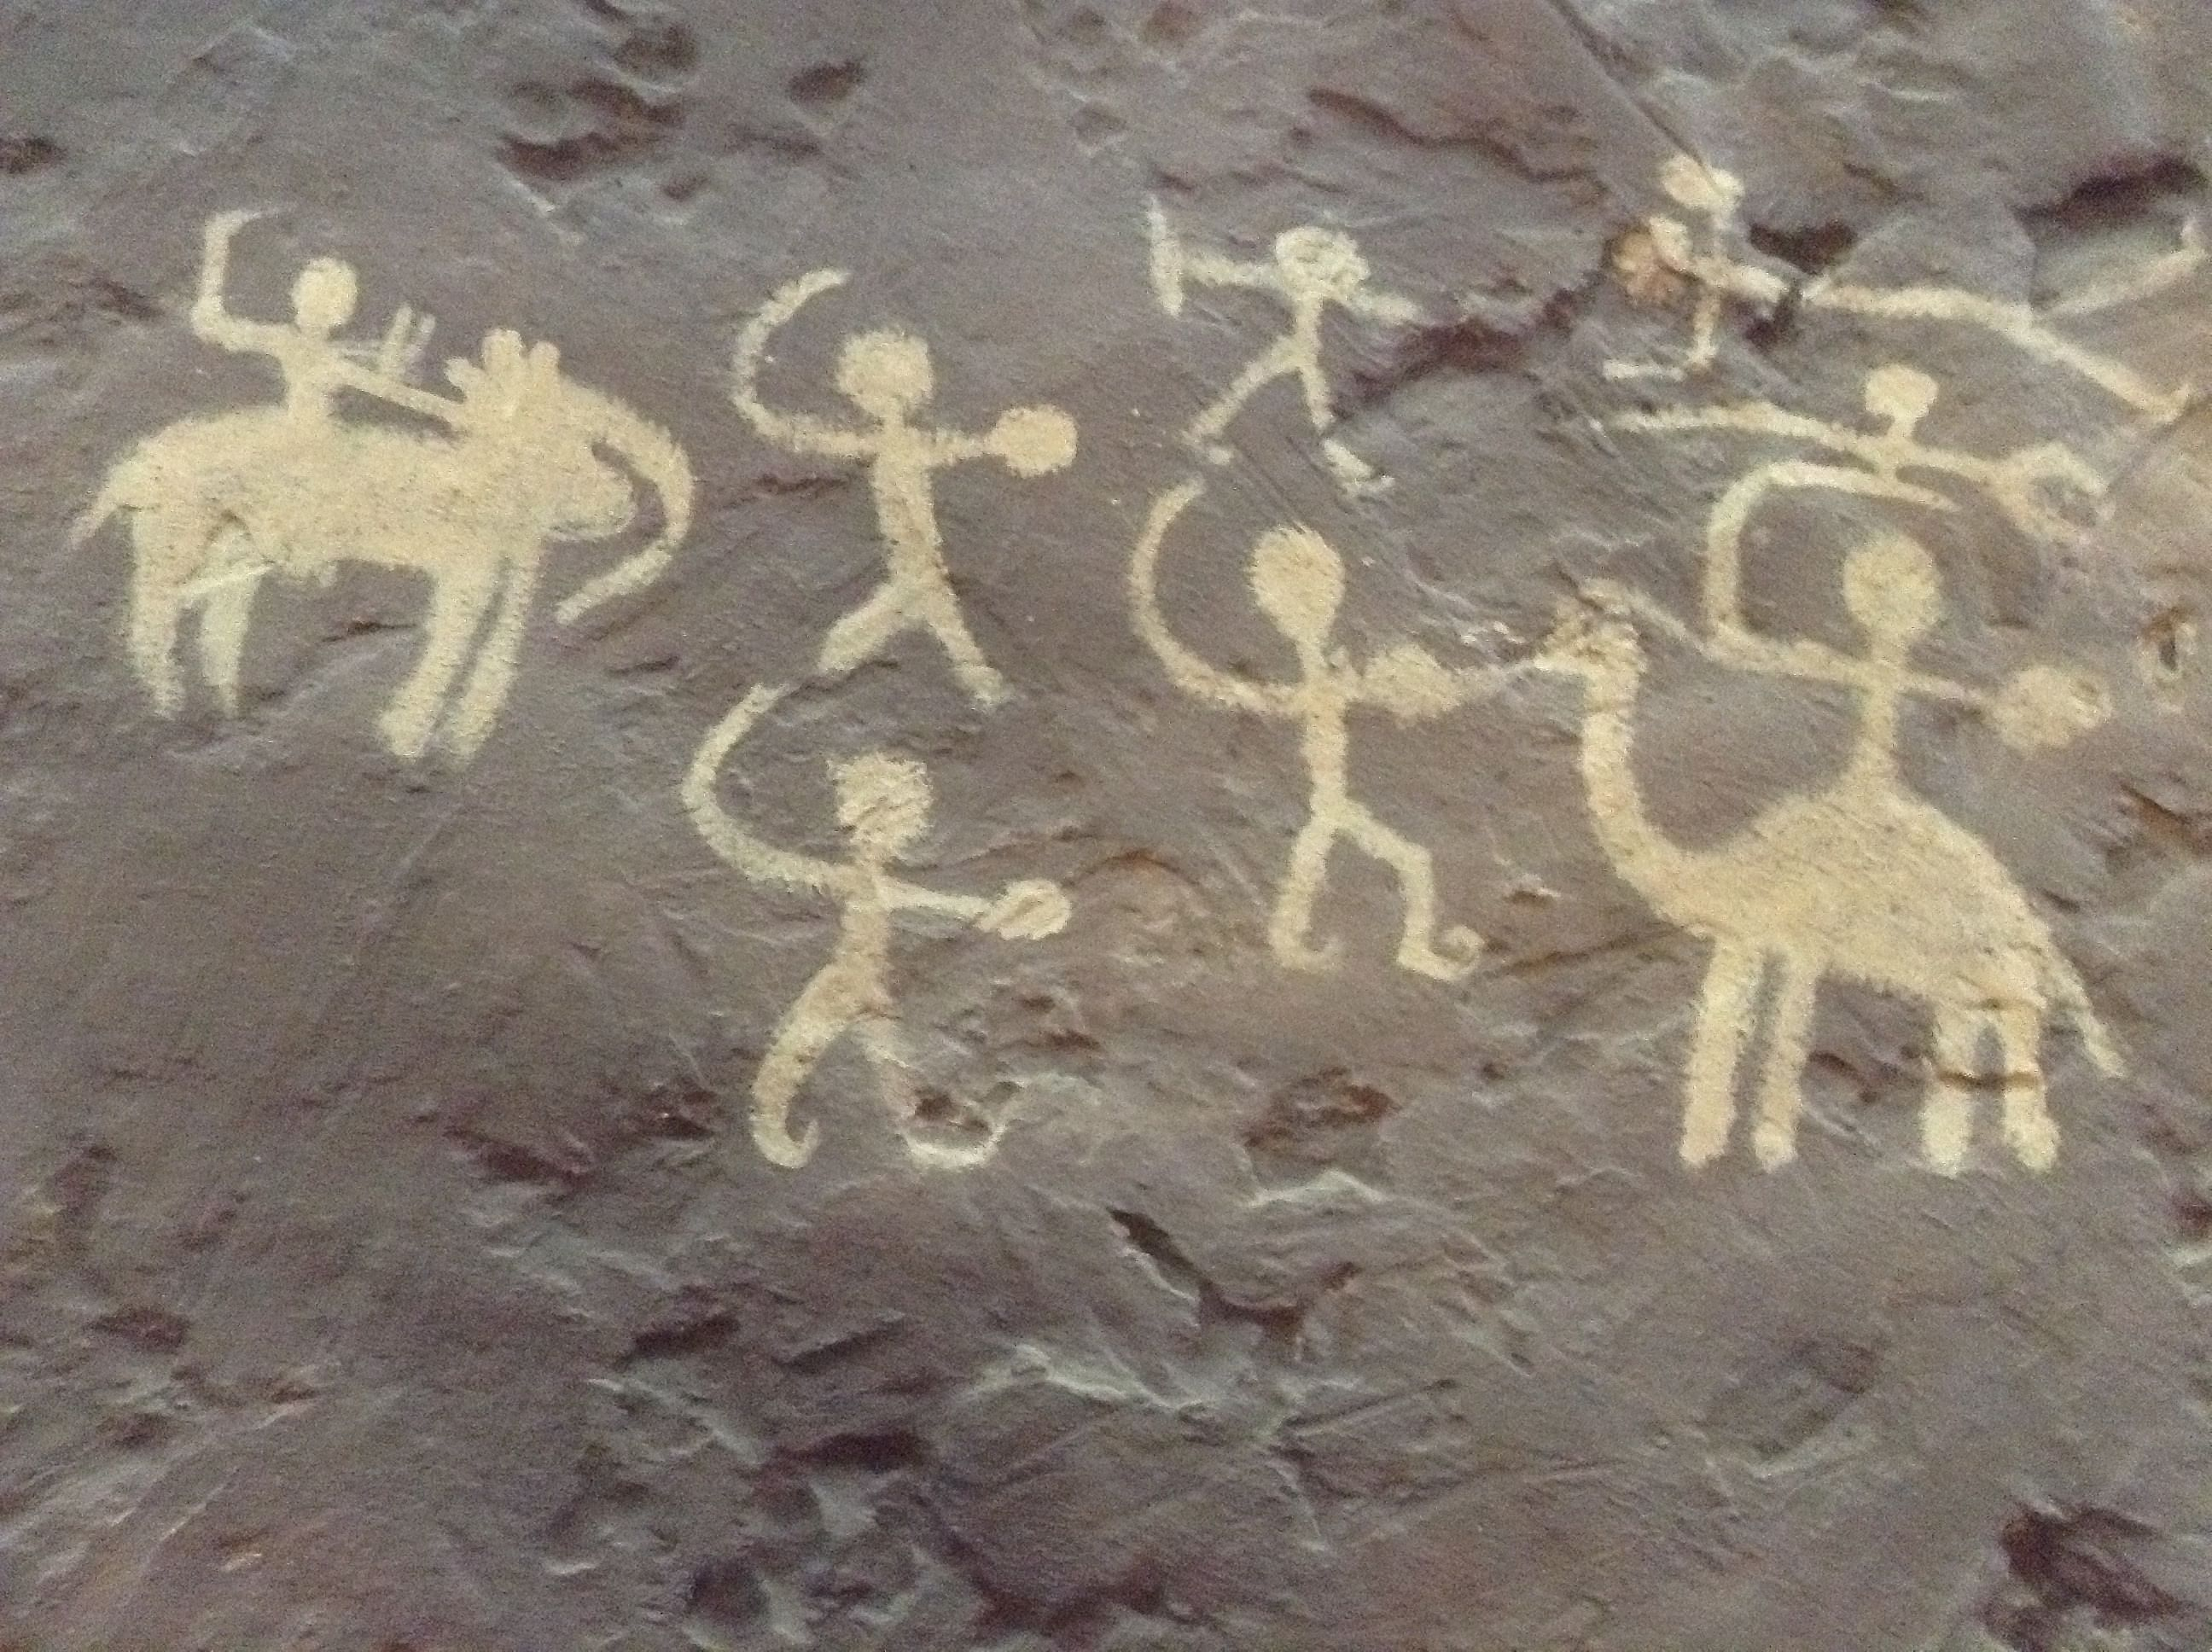 An example of rock art created by the Early Man